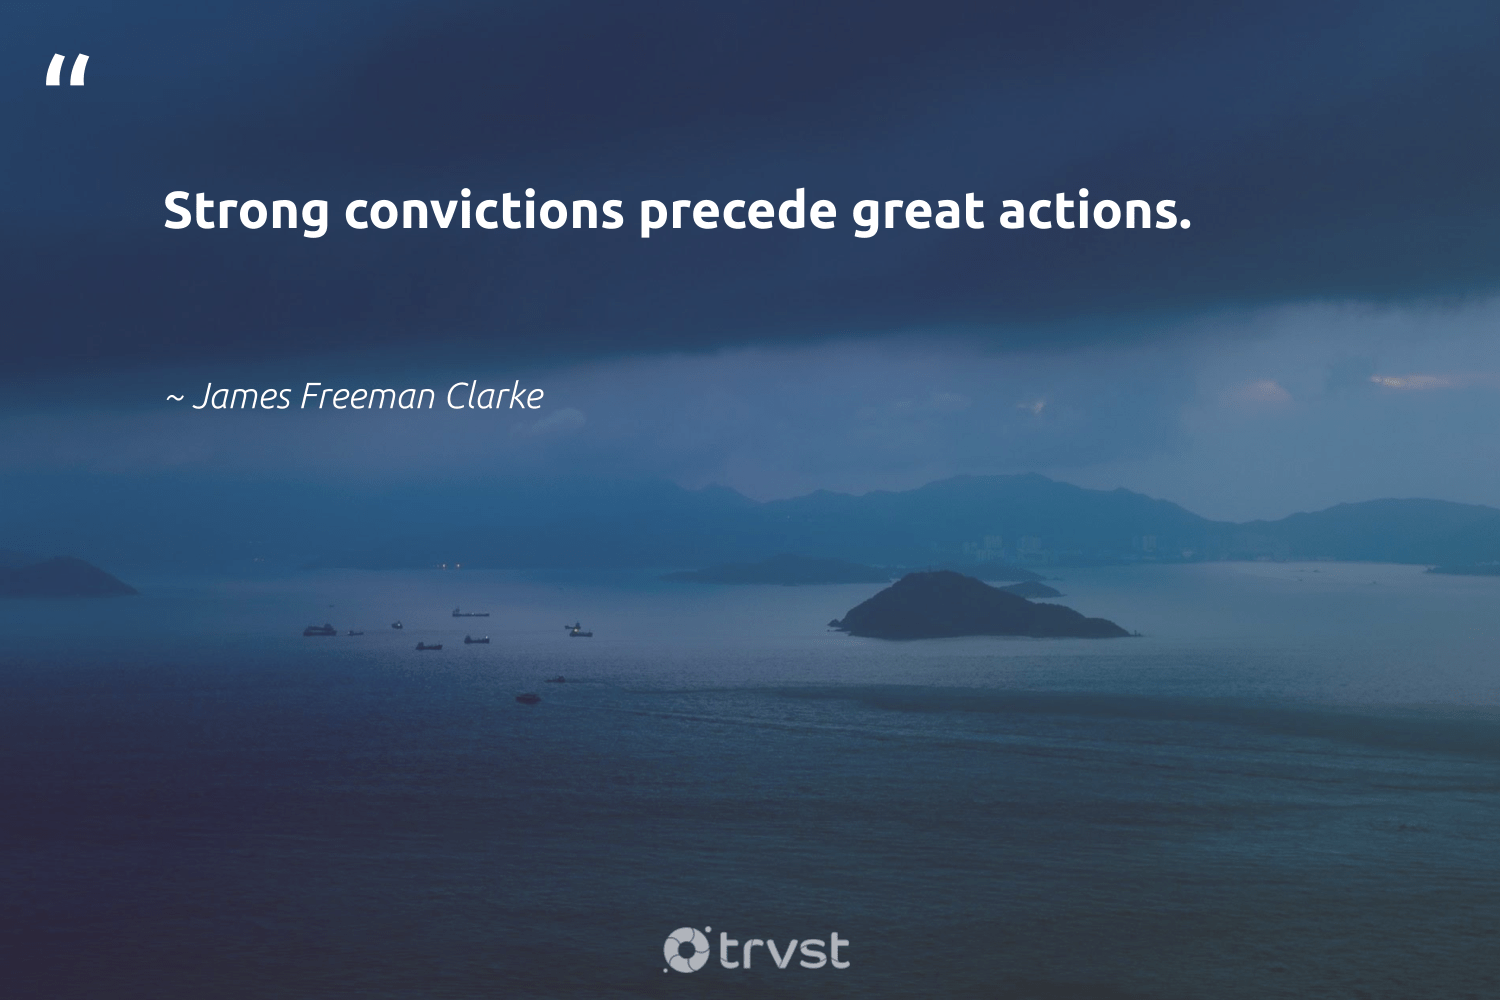 """Strong convictions precede great actions.""  - James Freeman Clarke #trvst #quotes #nevergiveup #thinkgreen #softskills #beinspired #futureofwork #gogreen #begreat #changetheworld #takeaction #bethechange"